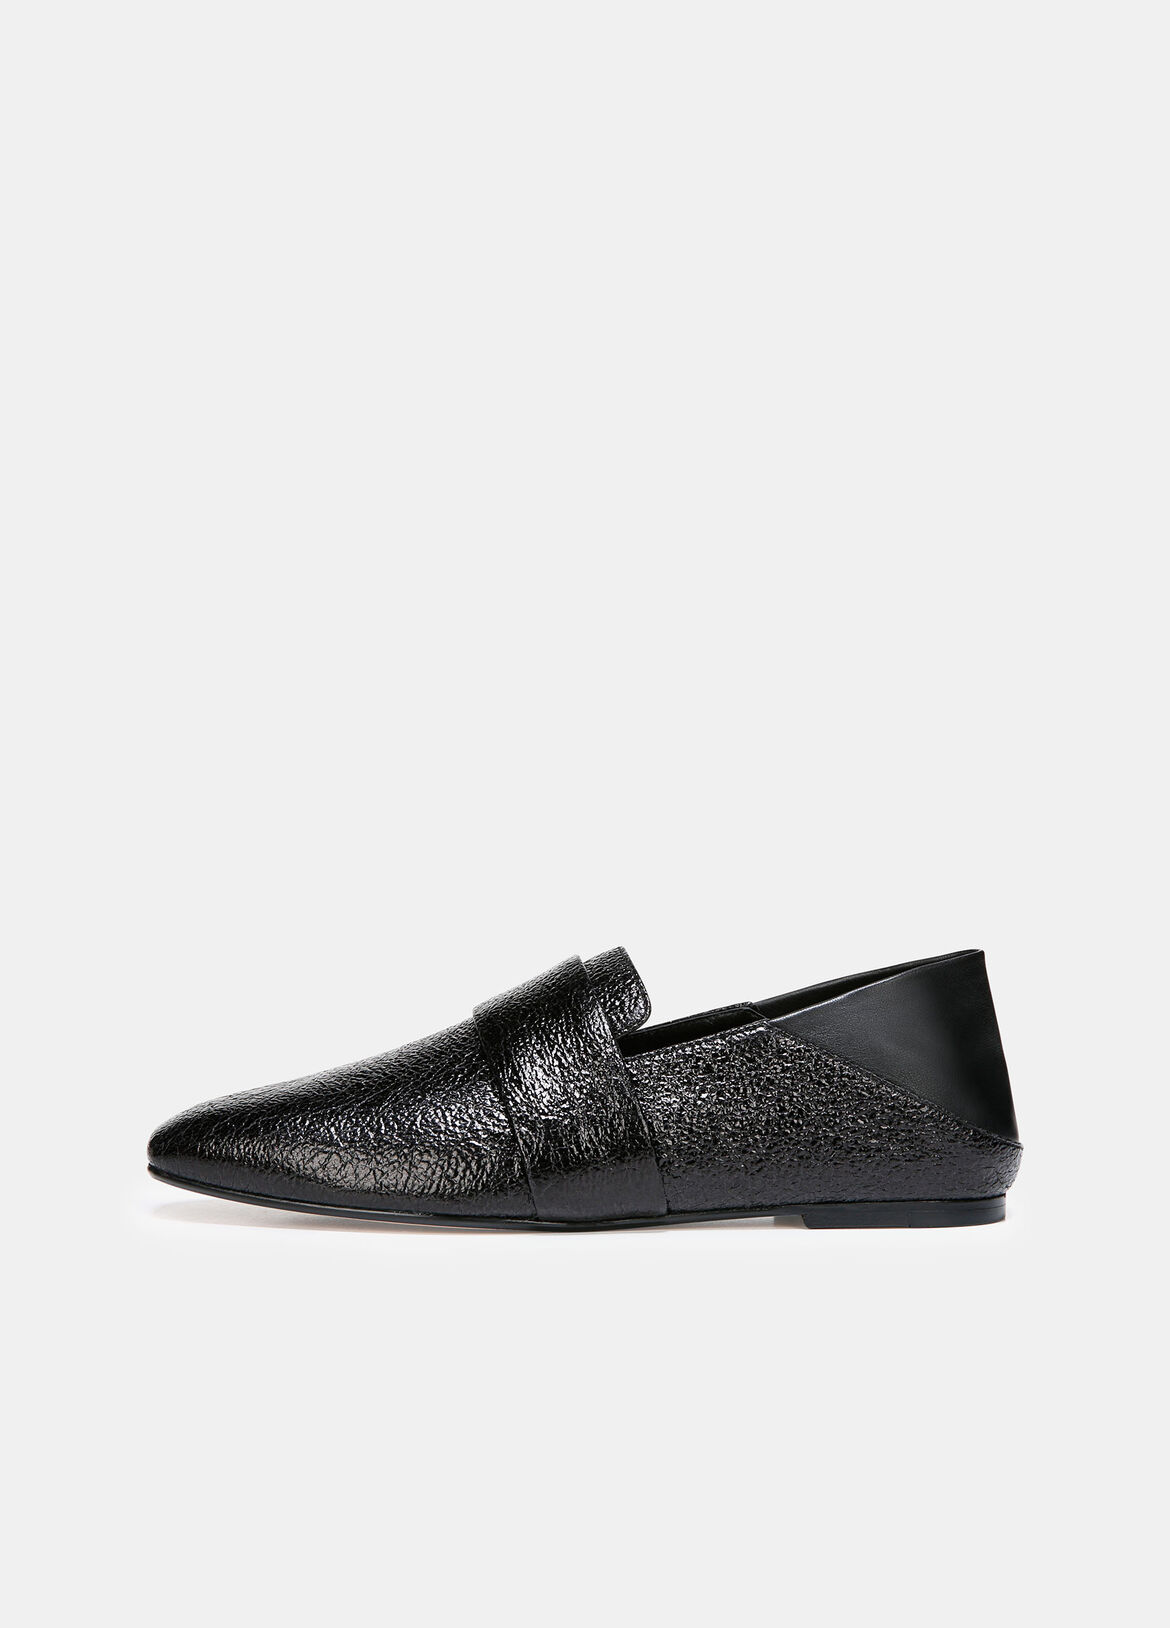 The pared-back loafer feels luxurious in crinkle-textured leather. Details reveal a minimal penny keeper and a fold-down heel-go from sleek to casual with an effortless collapse.